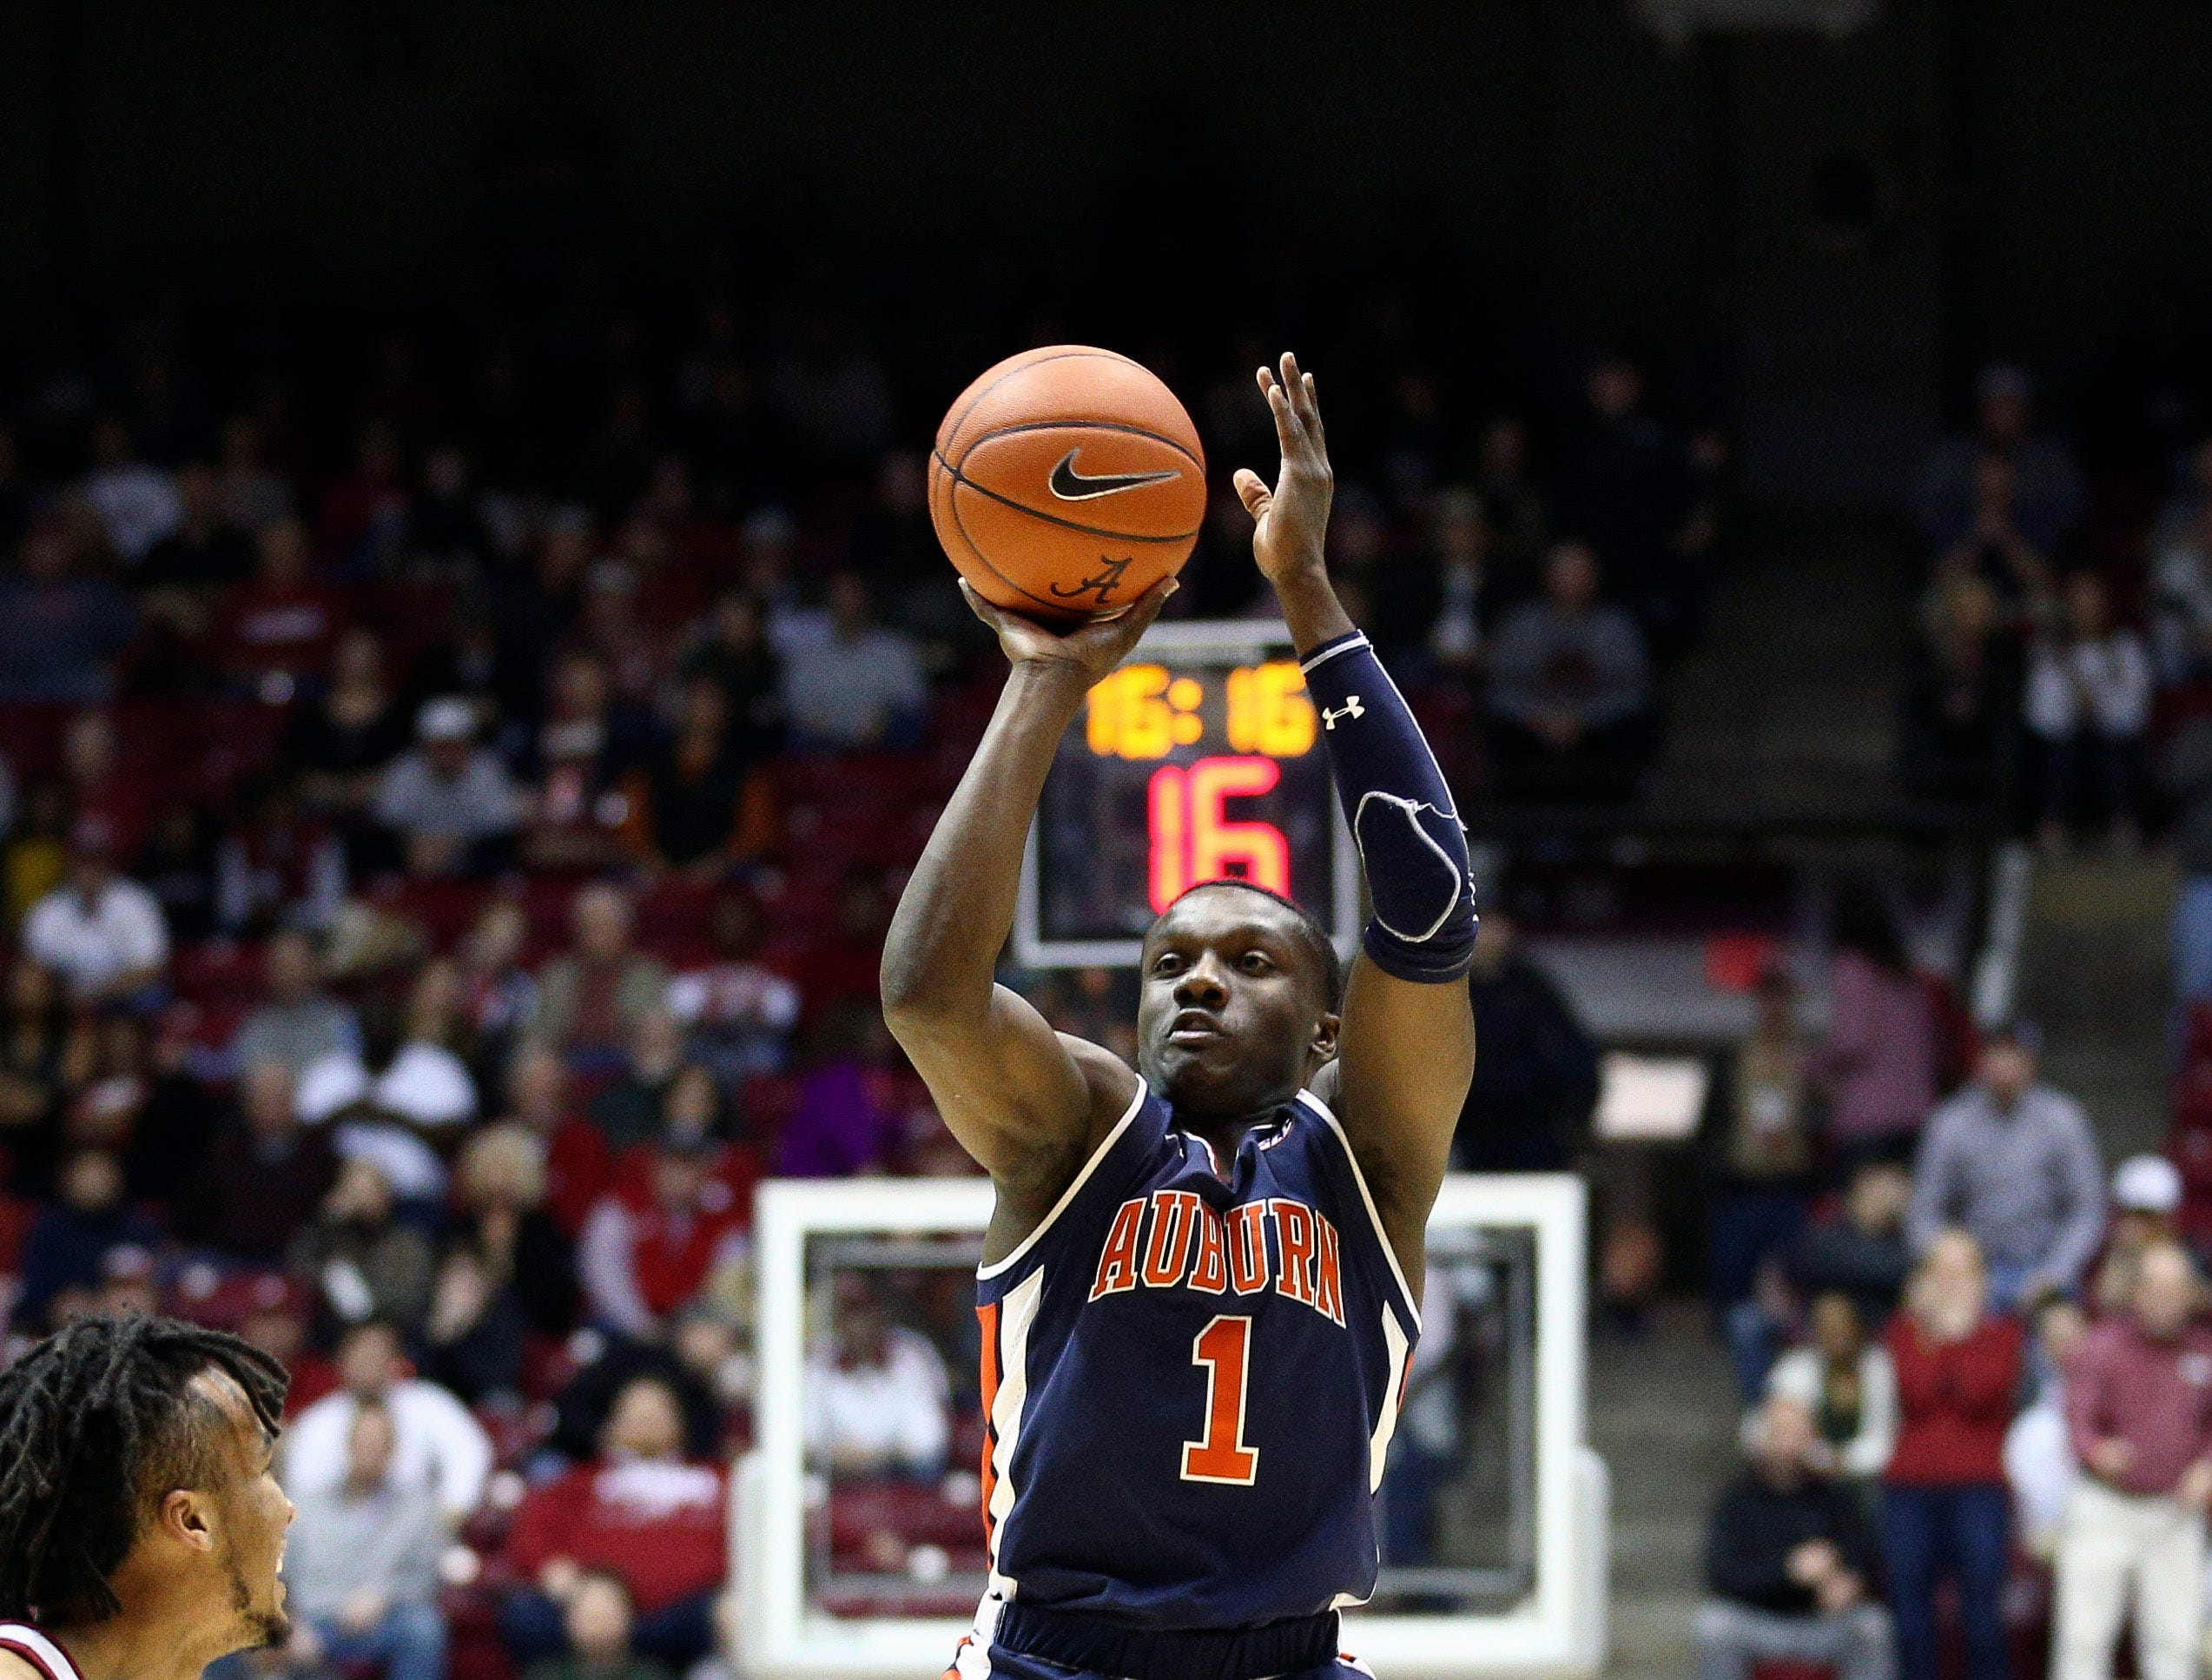 Mar 5, 2019; Tuscaloosa, AL, USA; Auburn Tigers guard Jared Harper (1) shoots against Alabama Crimson Tide during the first half at Coleman Coliseum. Mandatory Credit: Marvin Gentry-USA TODAY Sports